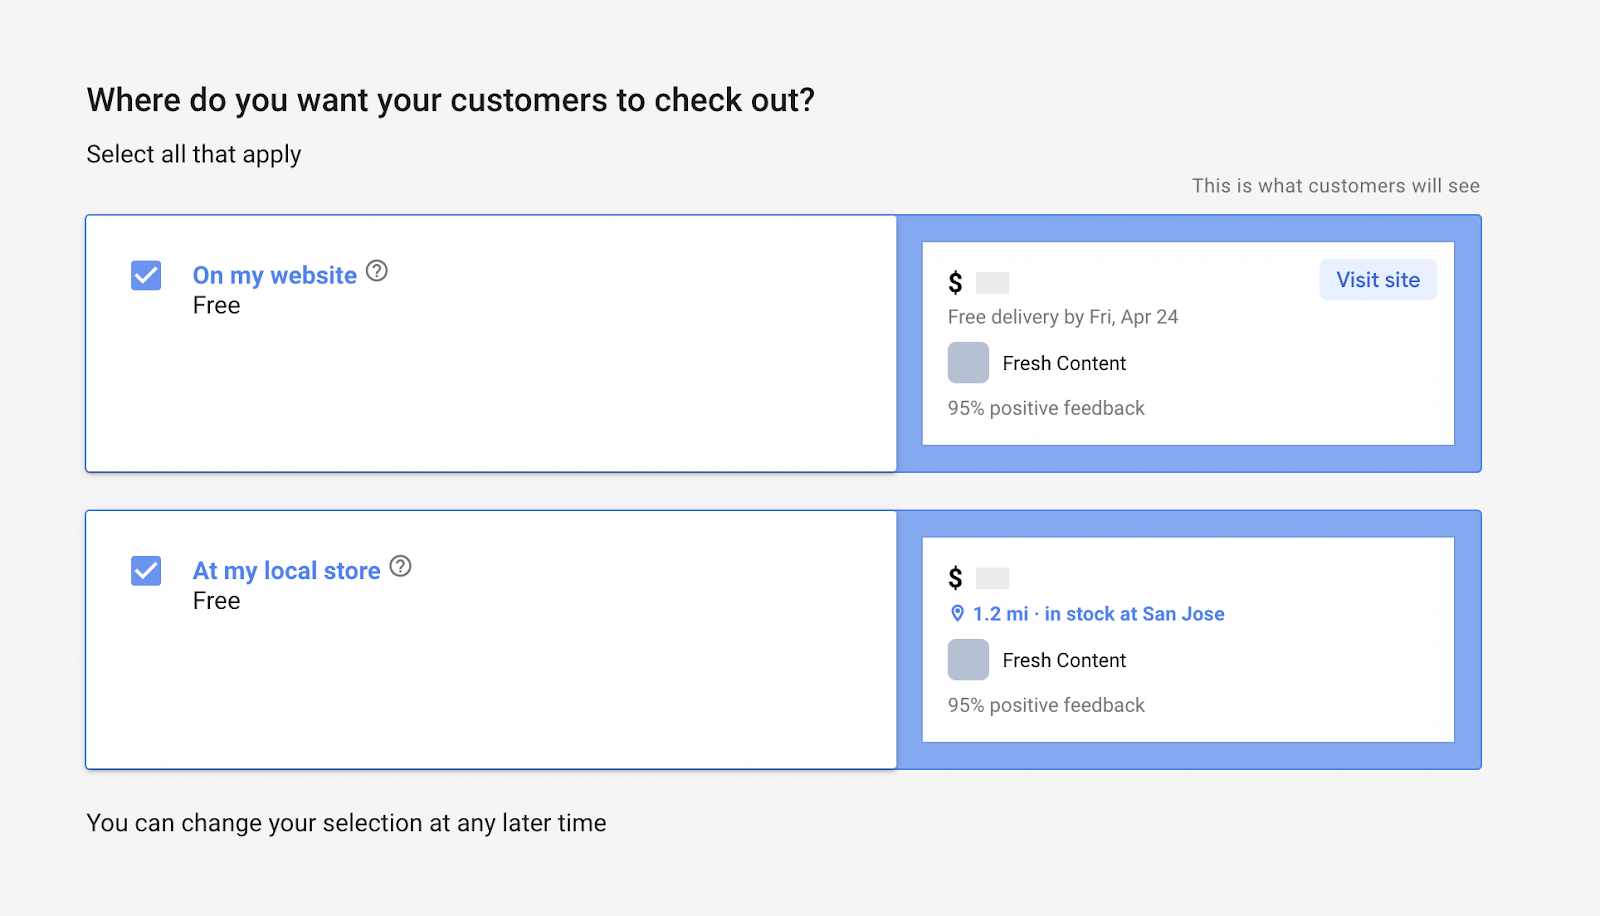 Select your check out preference